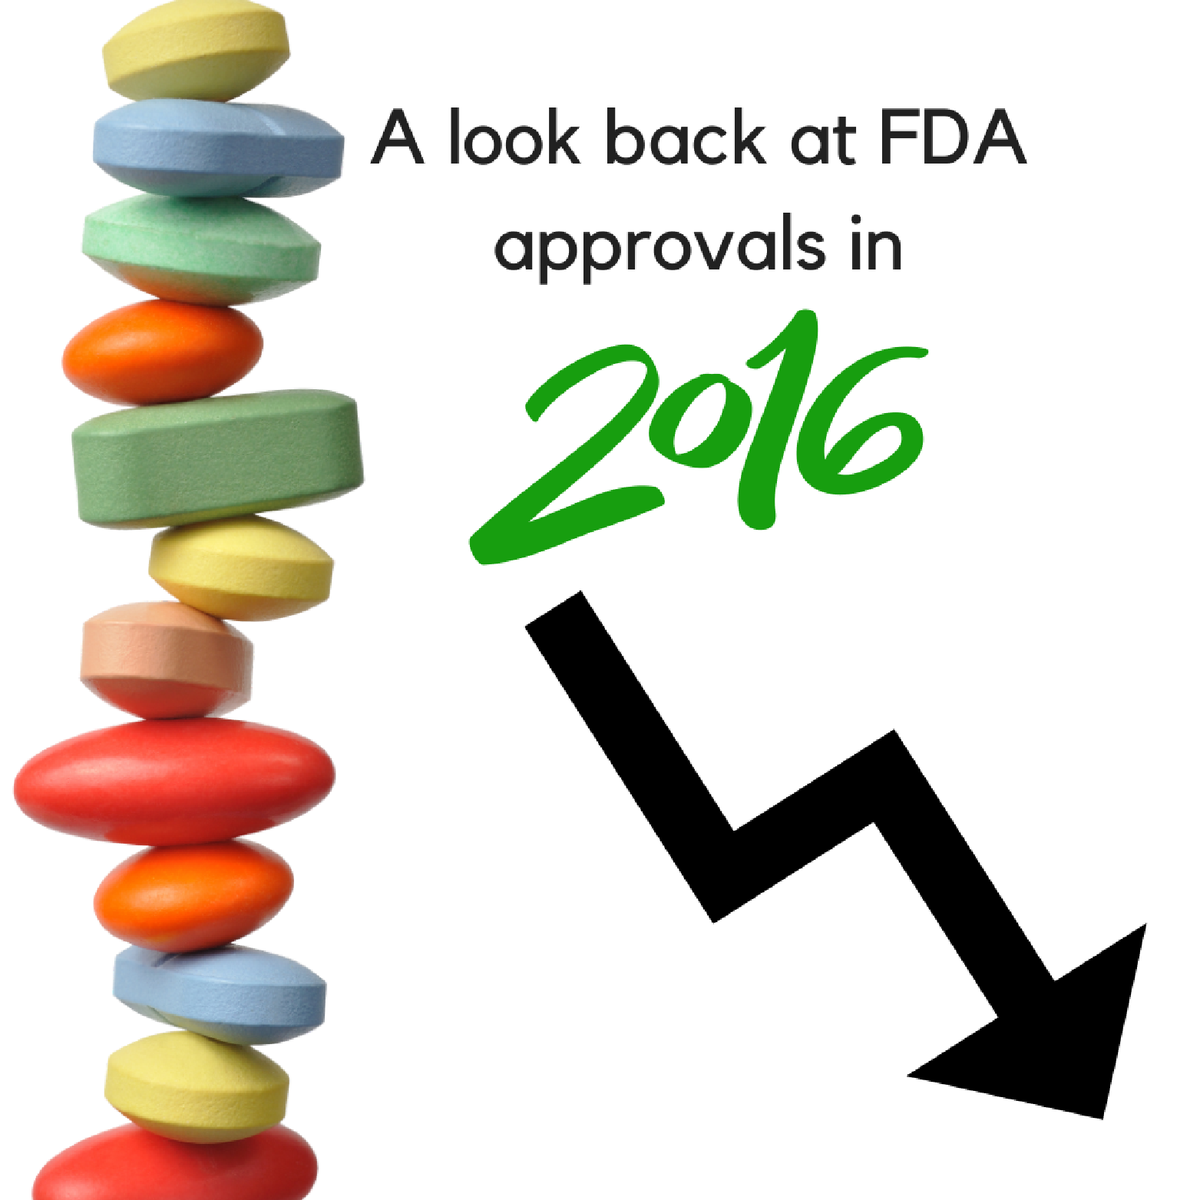 A Look Back at #FDA Approvals in 2016: The Downturn #pharma manufacturing  http:// hubs.ly/H05_v870  &nbsp;  <br>http://pic.twitter.com/b7X66cwzoR